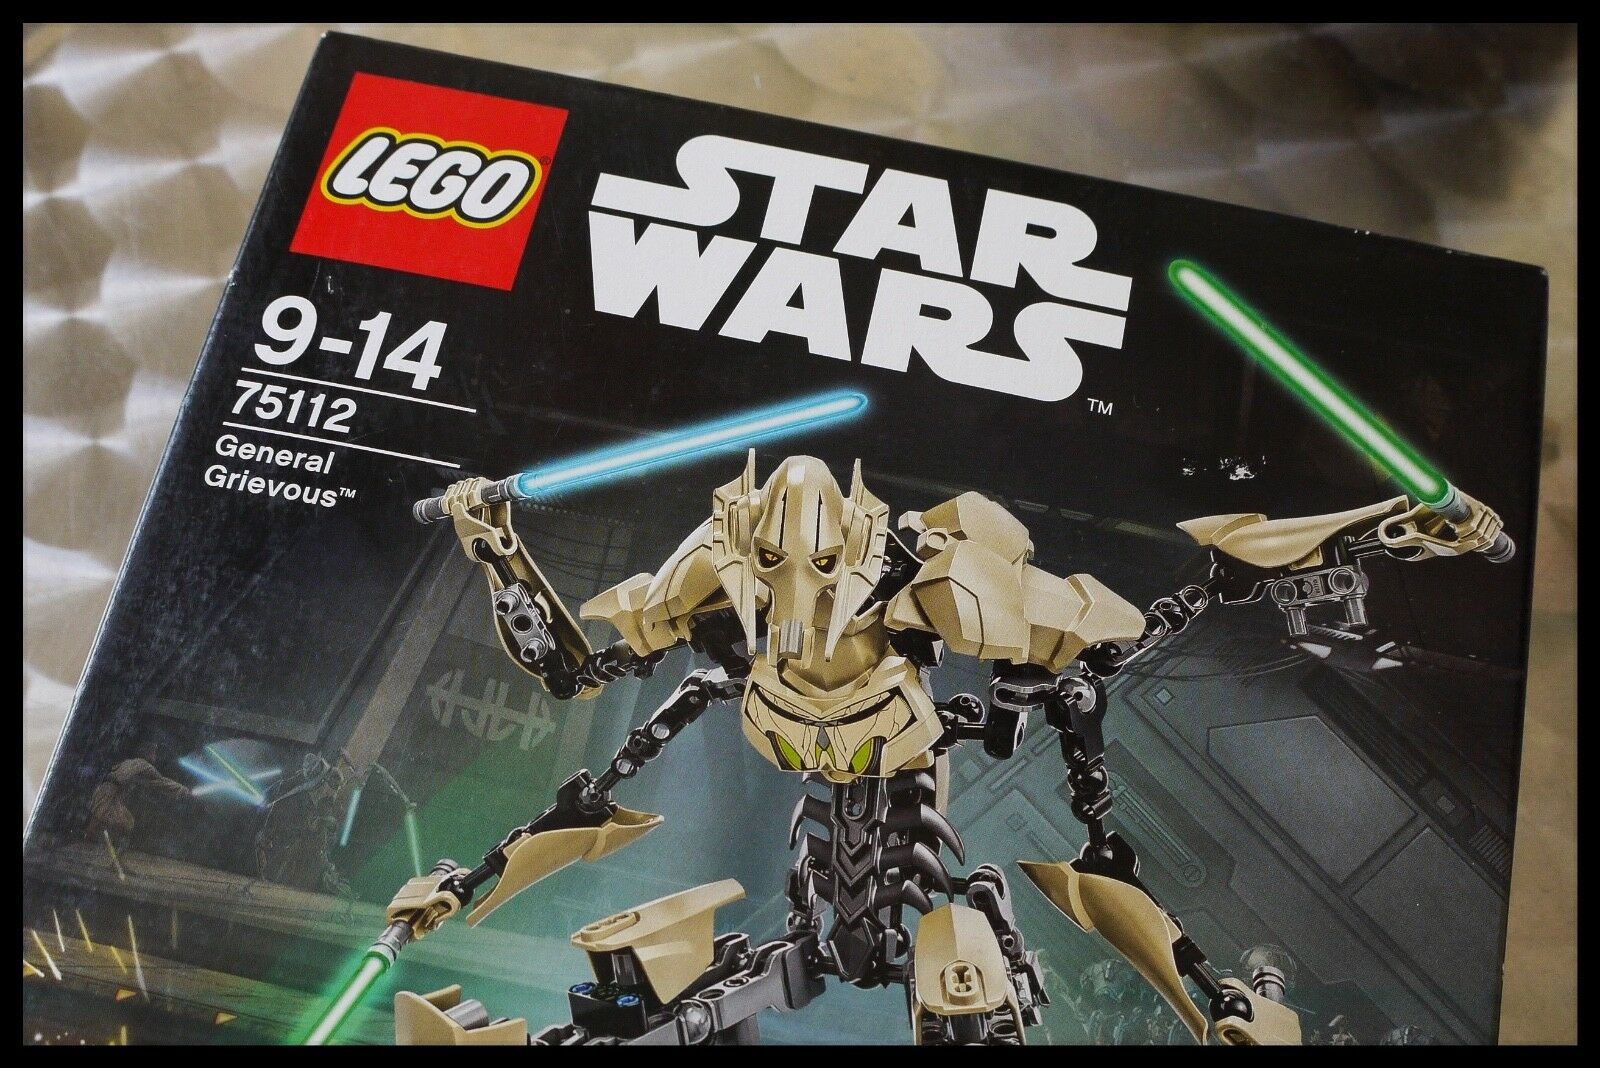 LEGO STAR WARS 75112 GENERAL GRIEVOUS BUILDABLE FIGURE NEW AND SEALED RETIROT